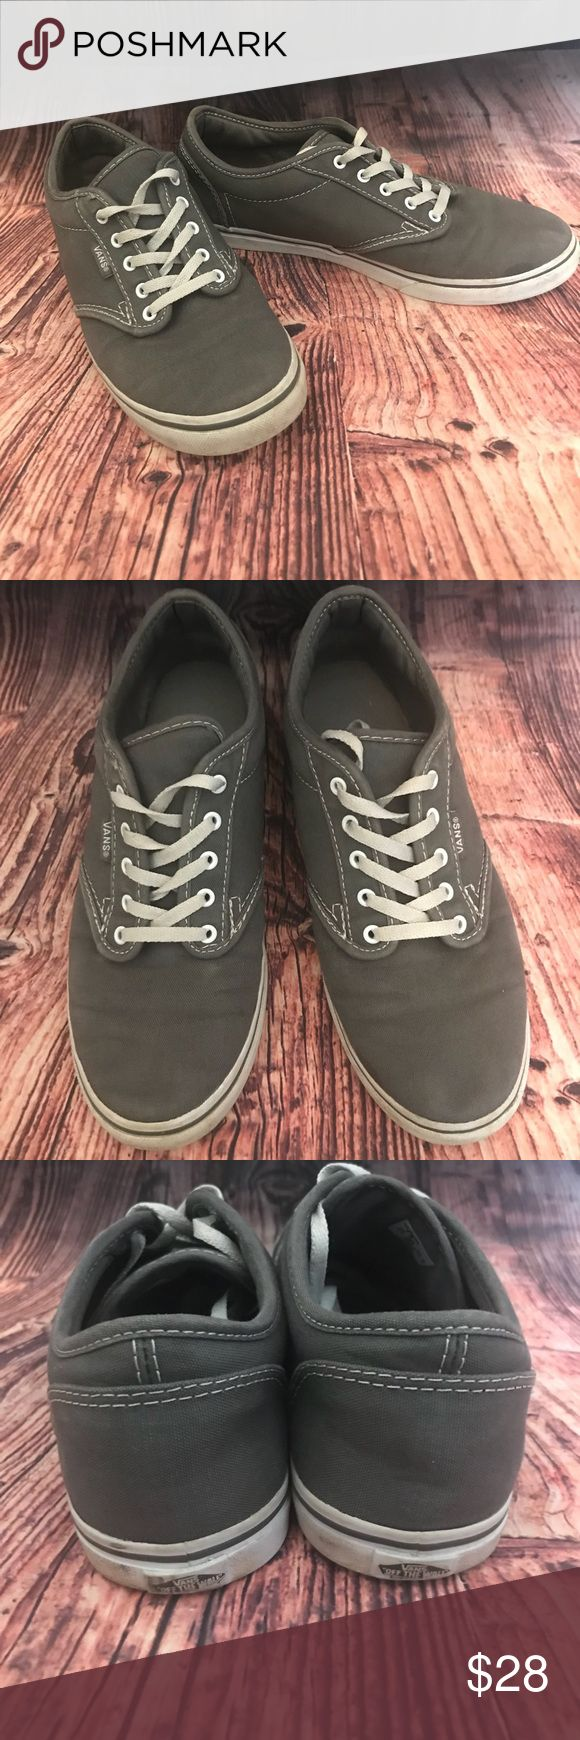 Vans classic authentic  grey sneakers Ladies grey classic authentic Vans with white full (long) laces. Size 7.5 in great used condition, they have lots of life left! No stains or damage, just usual wear with little dirt on while rubber sides that can be cleaned easily! 📦same or next day ship📦 Vans Shoes Sneakers